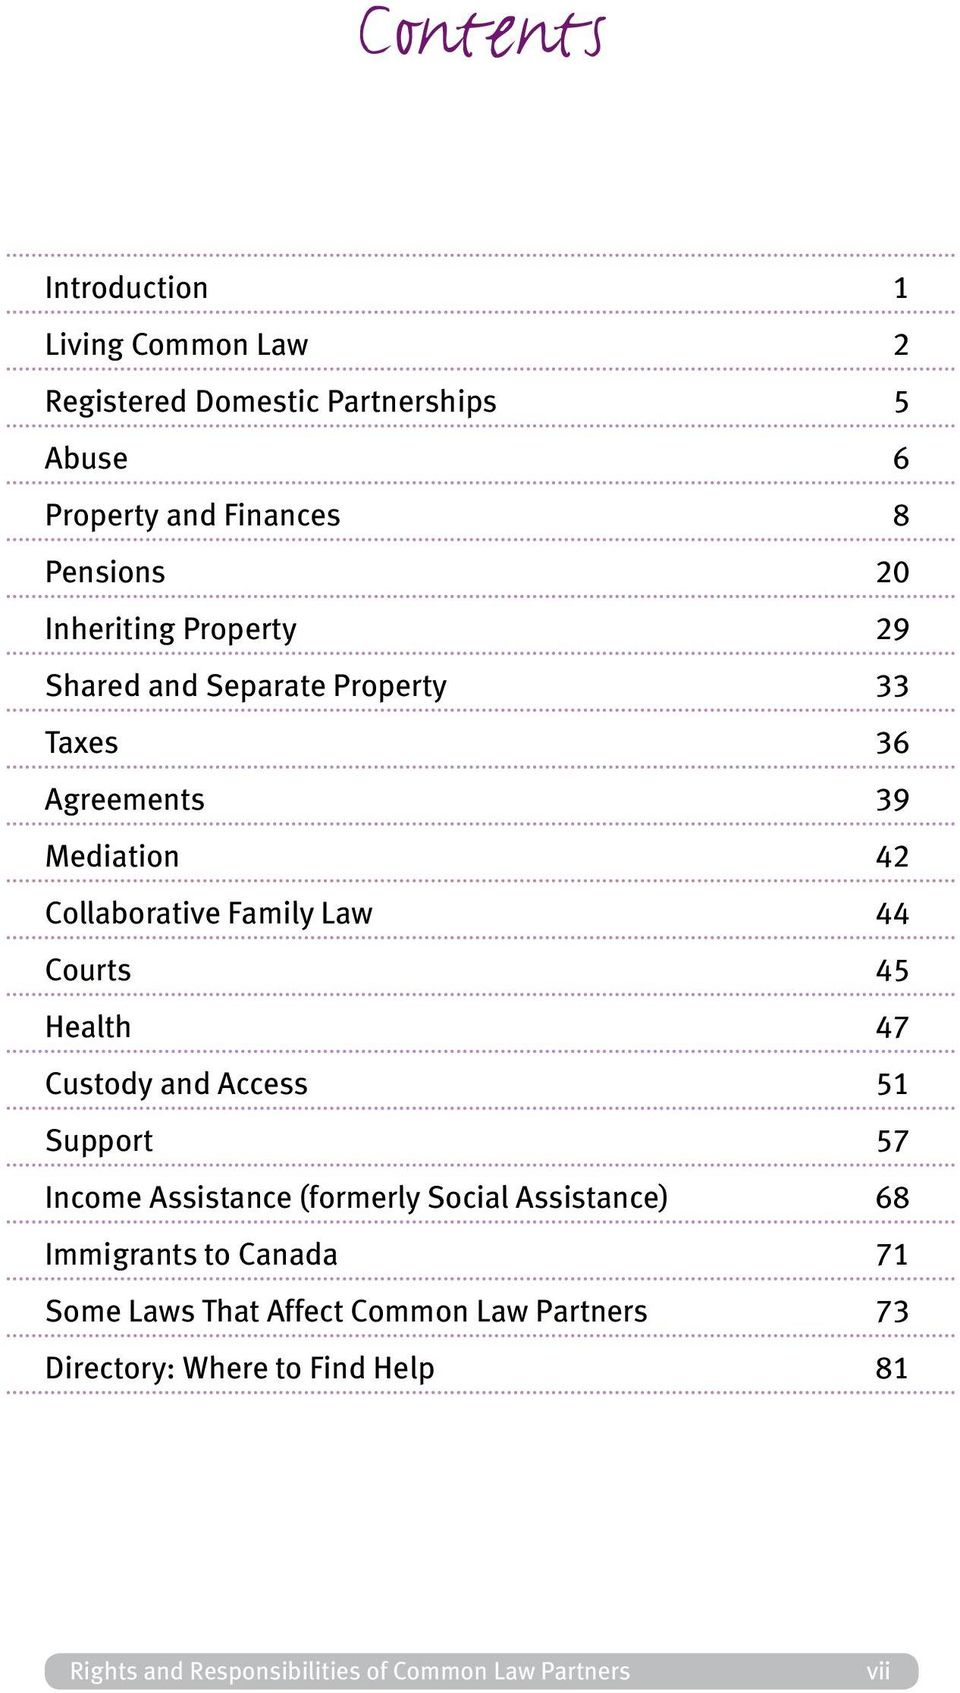 45 Health 47 Custody and Access 51 Support 57 Income Assistance (formerly Social Assistance) 68 Immigrants to Canada 71 Some